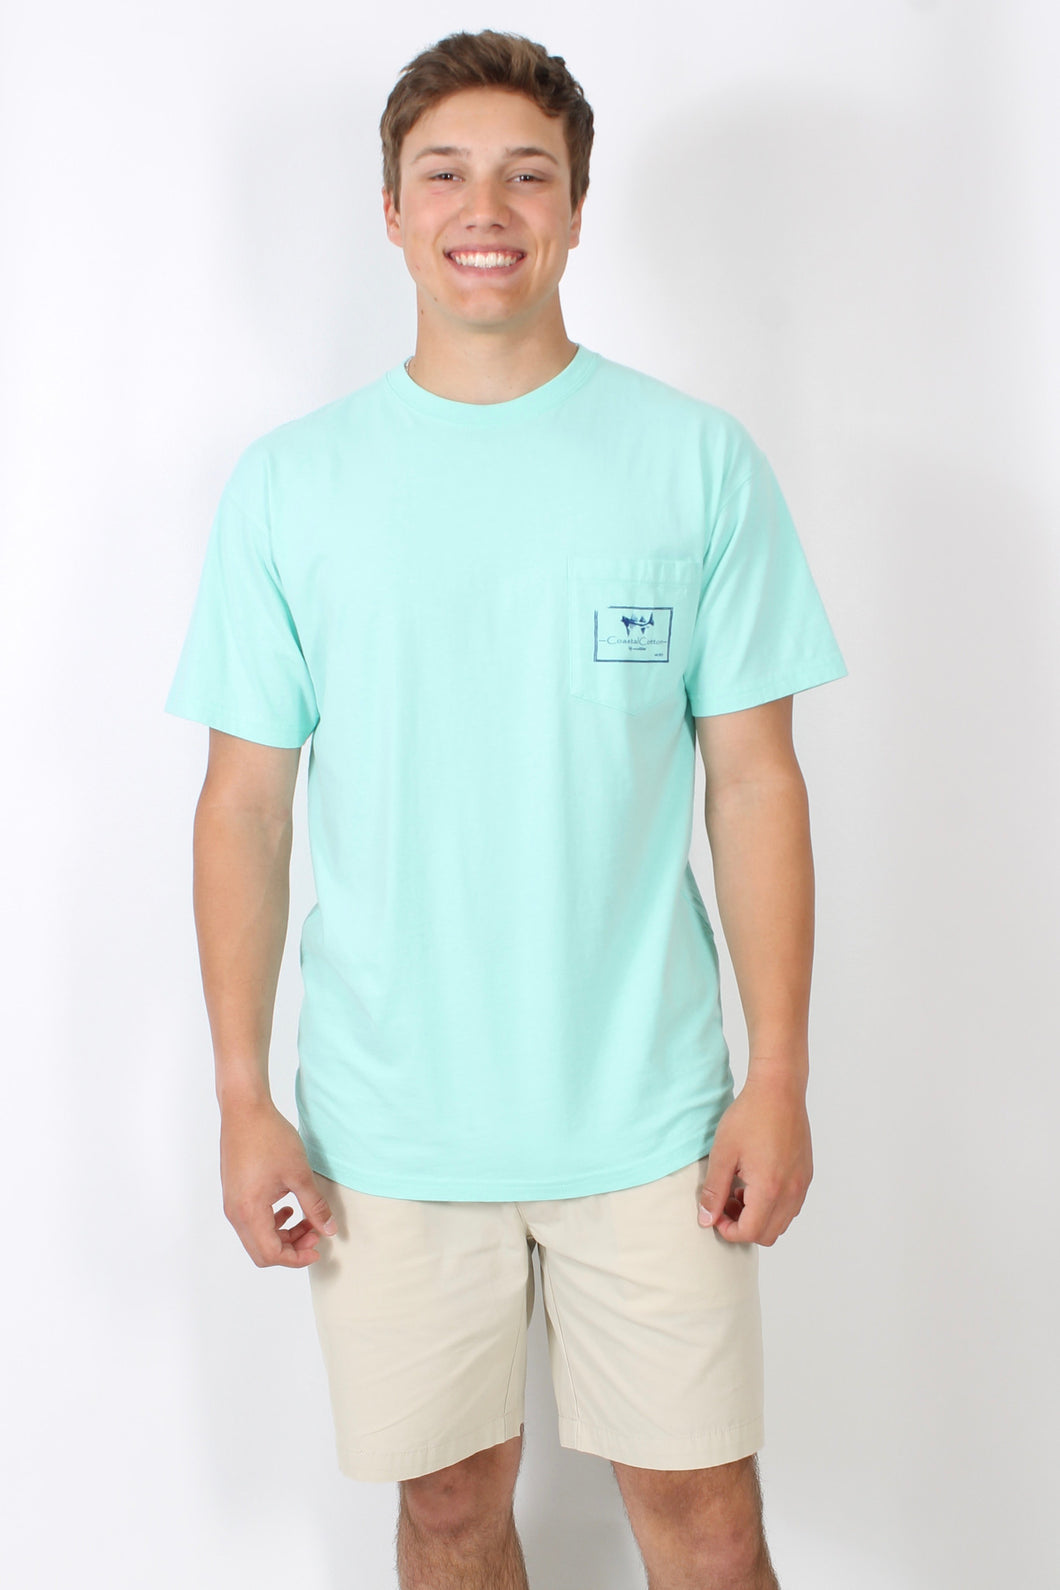 Aruba S/S- Coastal Cotton Better In Short Sleeve Front